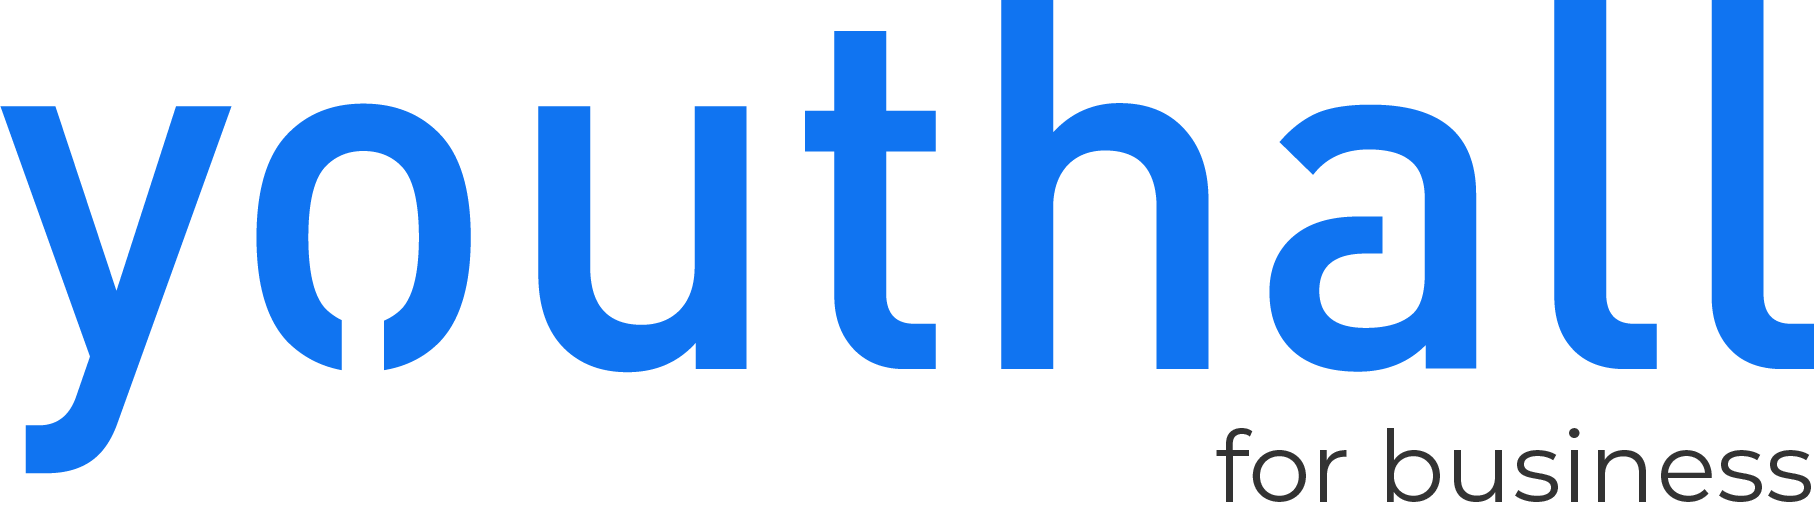 Youthall Logo For Business